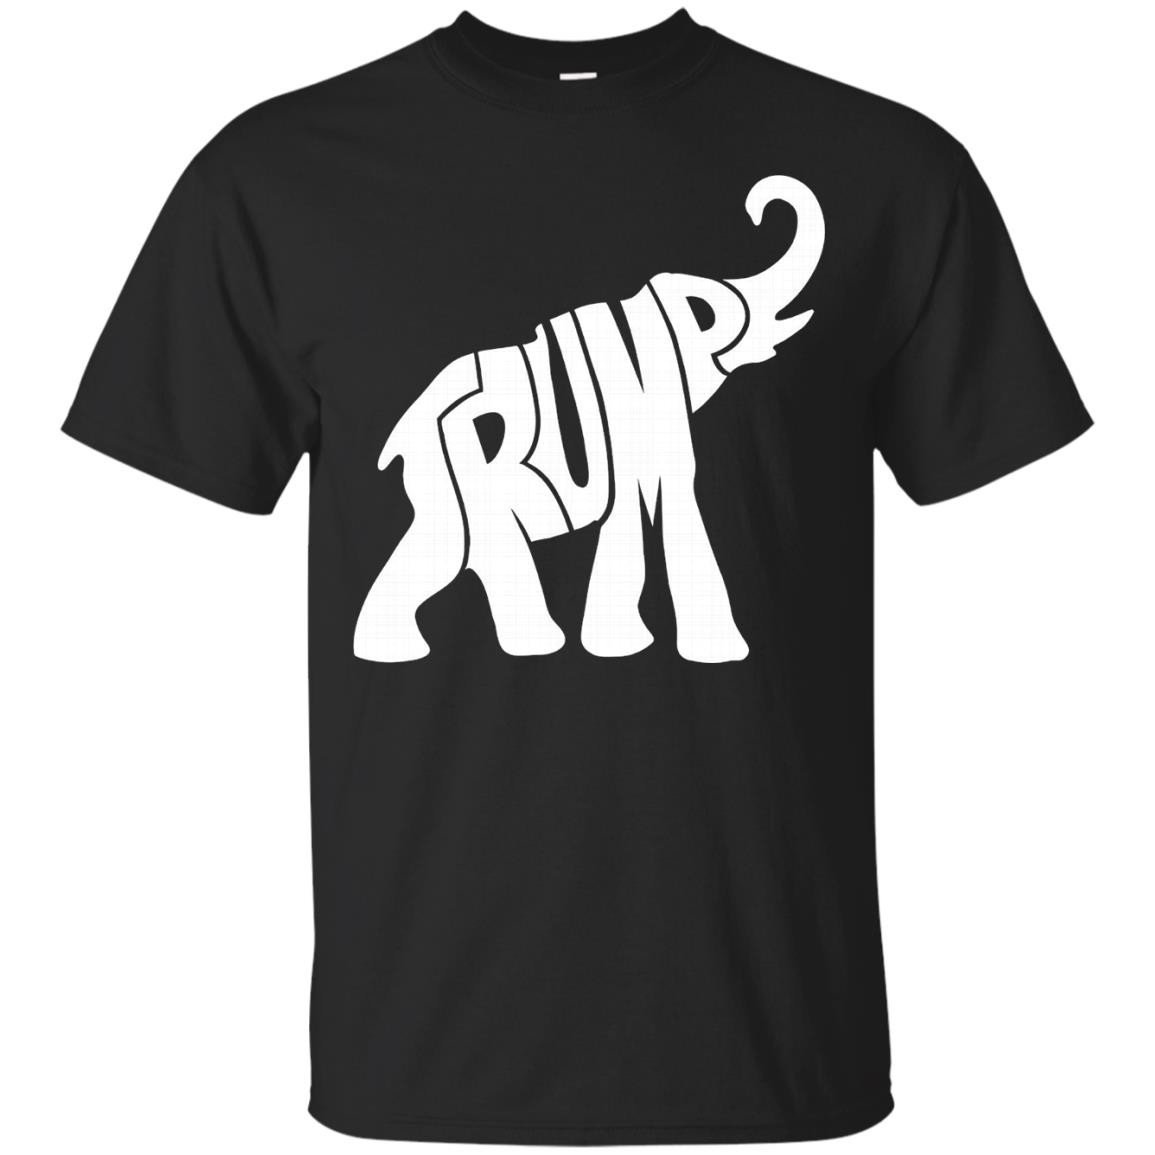 Donald Trump Republican Elephant Shirt for Supporters – T-Shirt